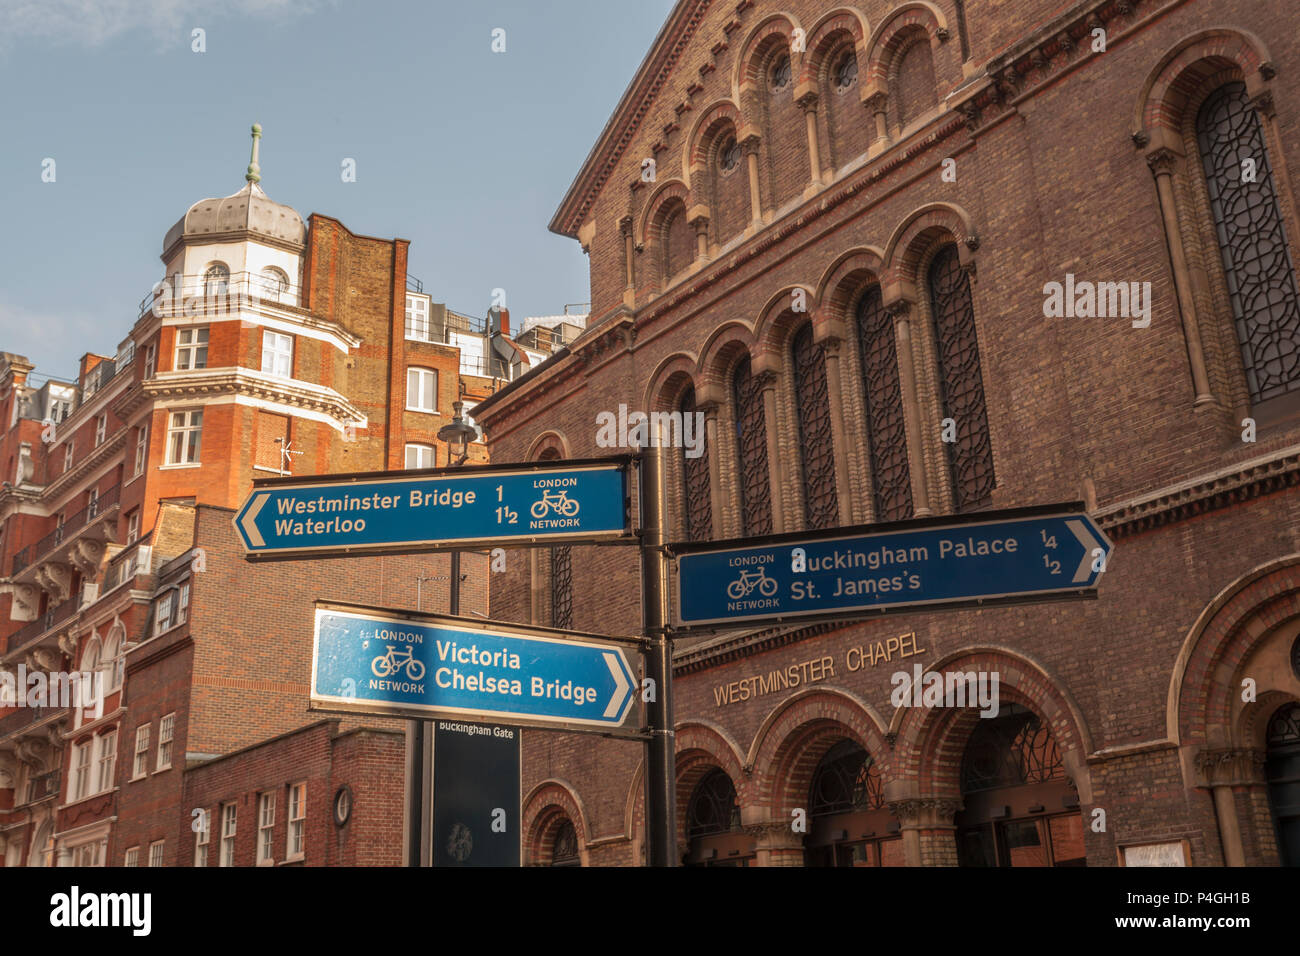 A sign post in London during a beautiful sunset outside Westminster Chapel - Stock Image